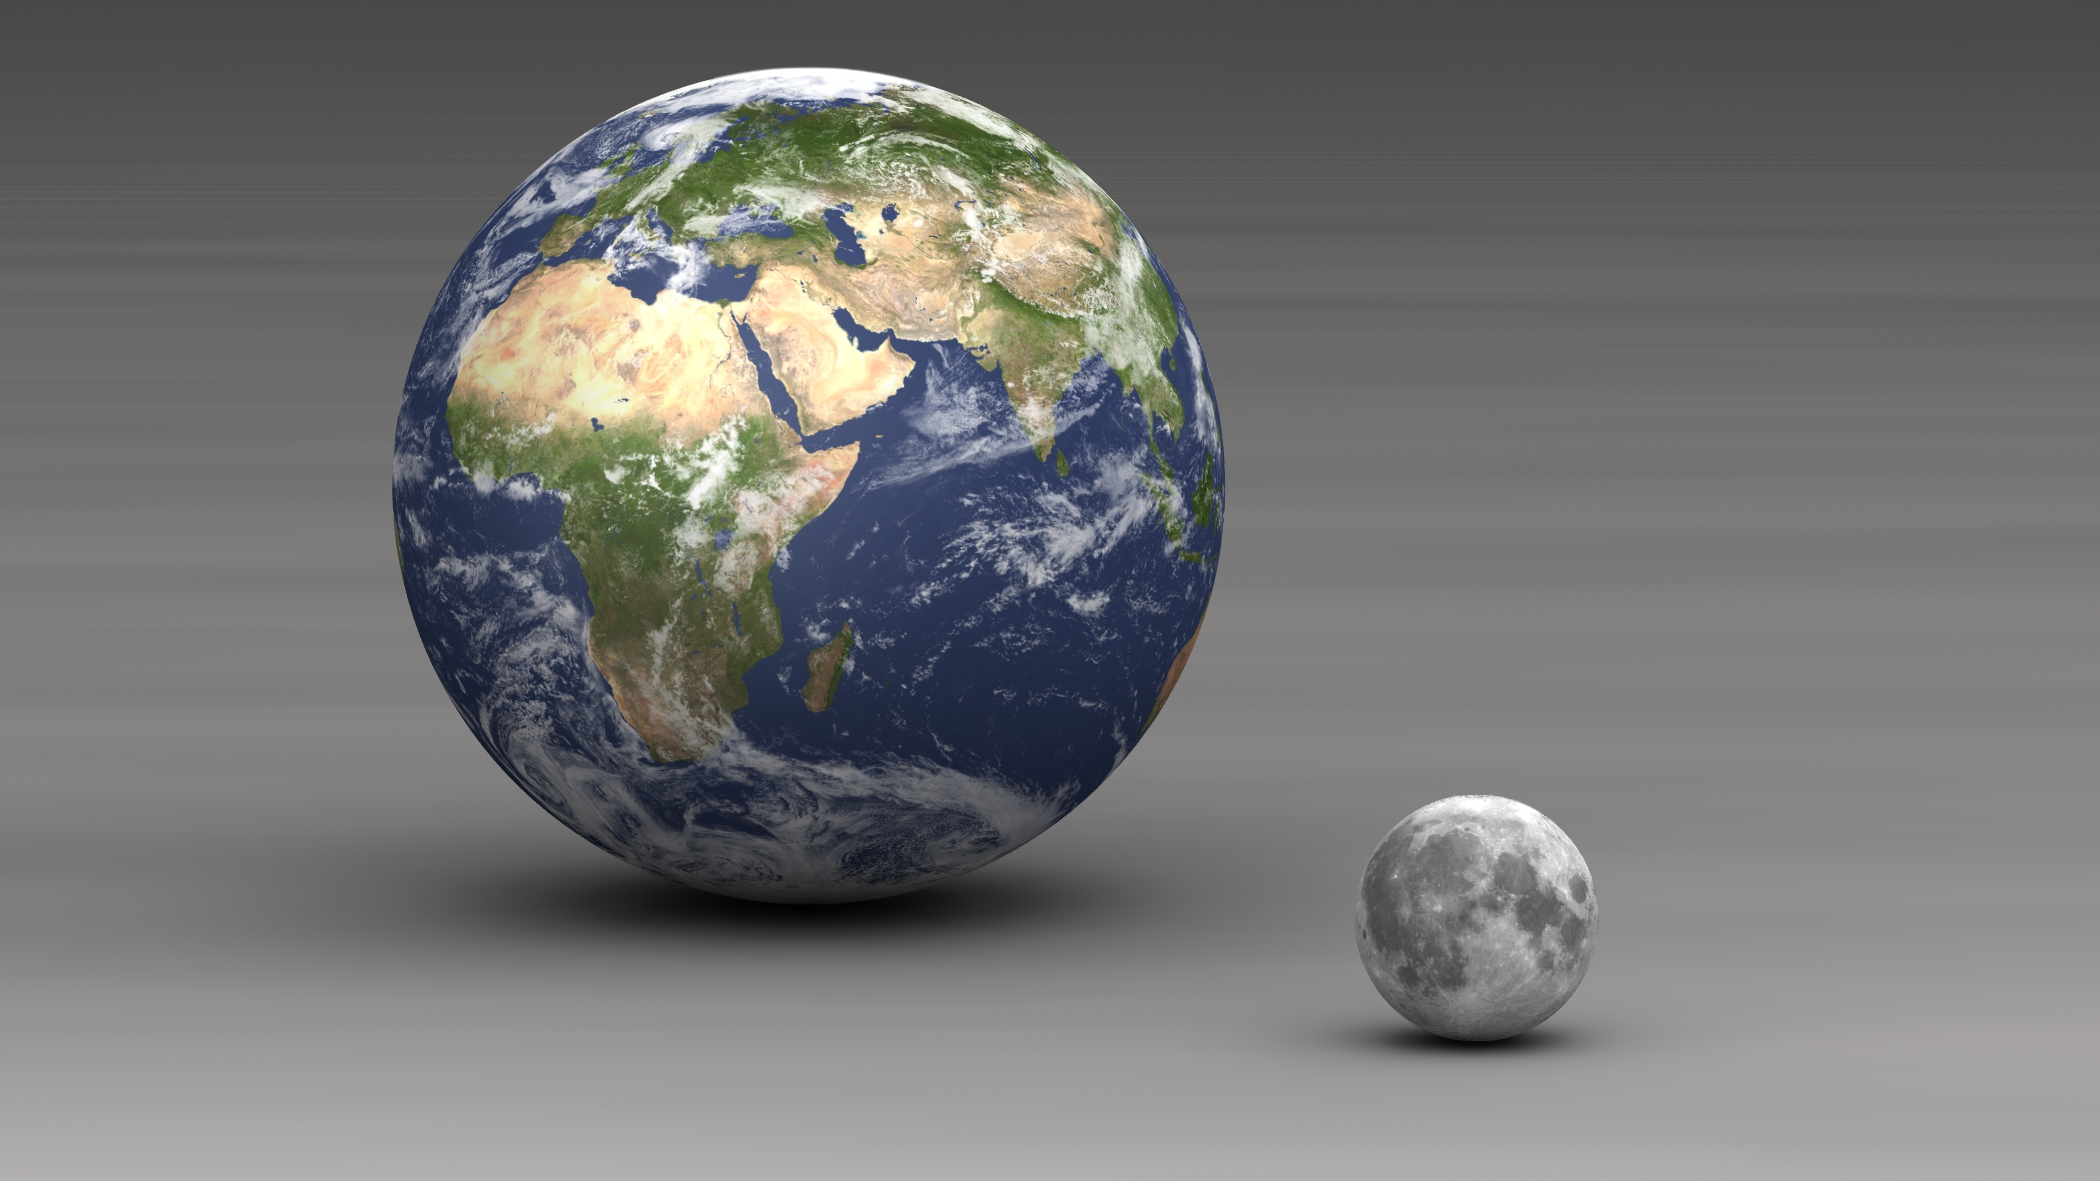 Earth_moon_size_comparison.jpg